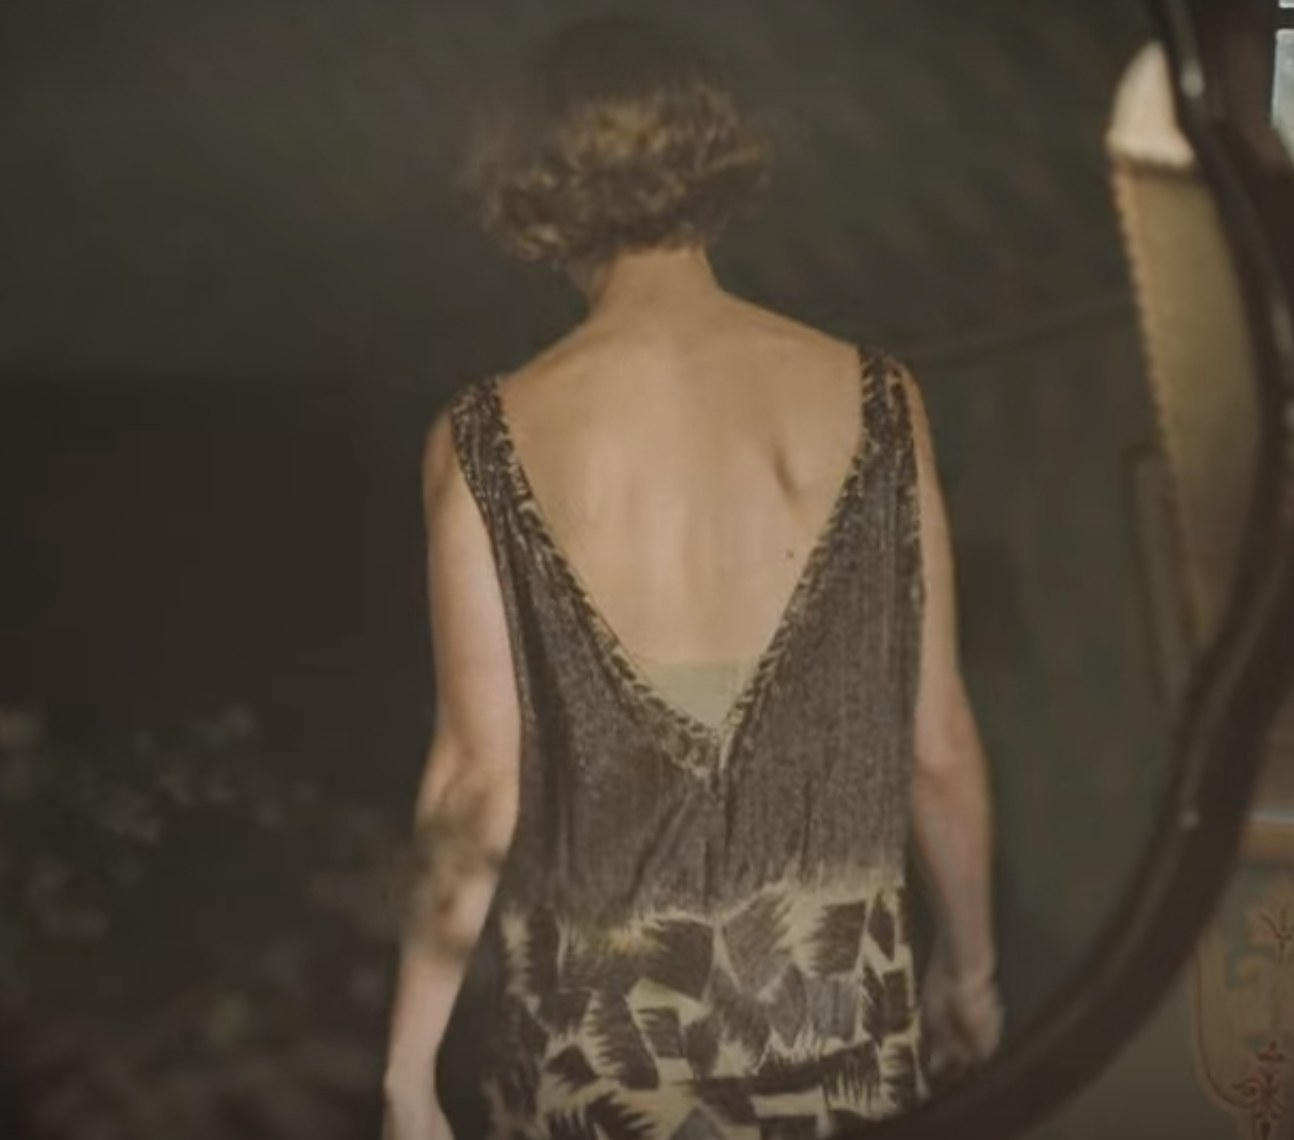 Still from The Dig: Back shot of Mrs. Pretty in gown